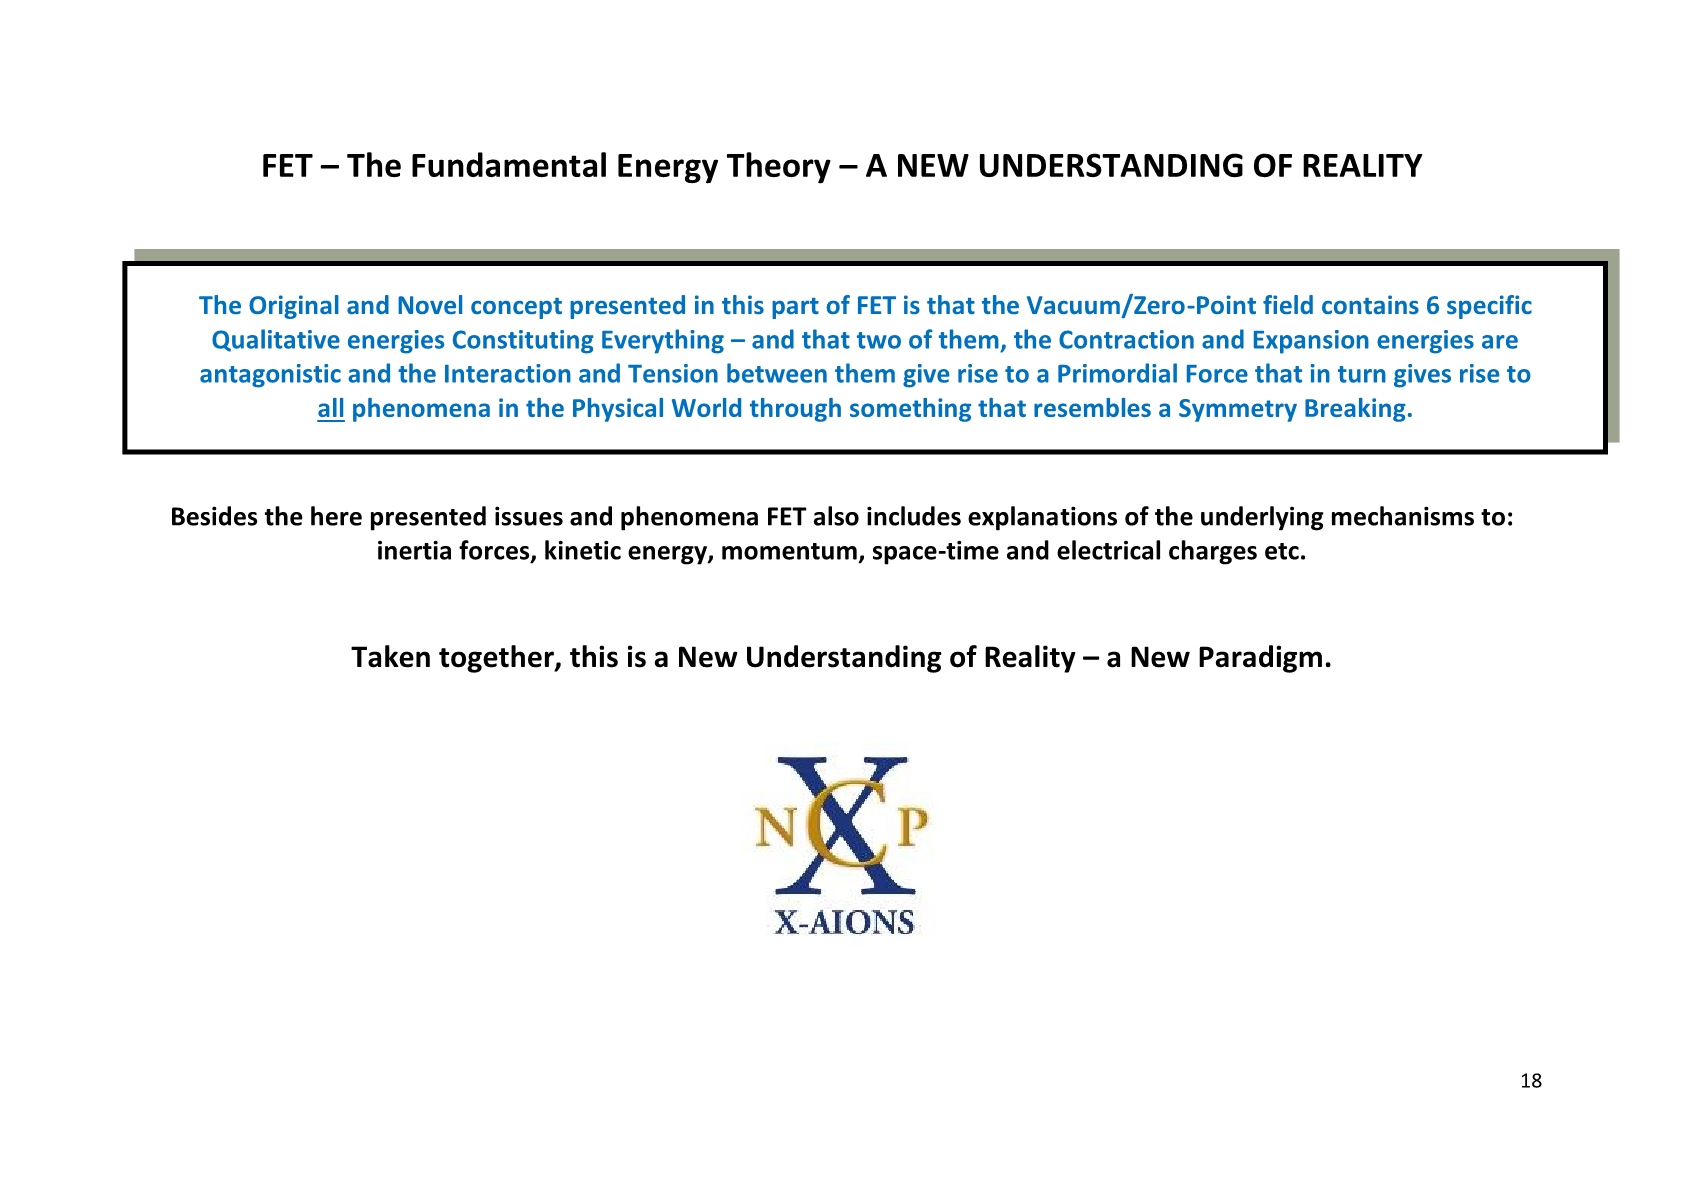 TSC 2012 FET- The Fundermental Energy Theory, NCP X-AIONS